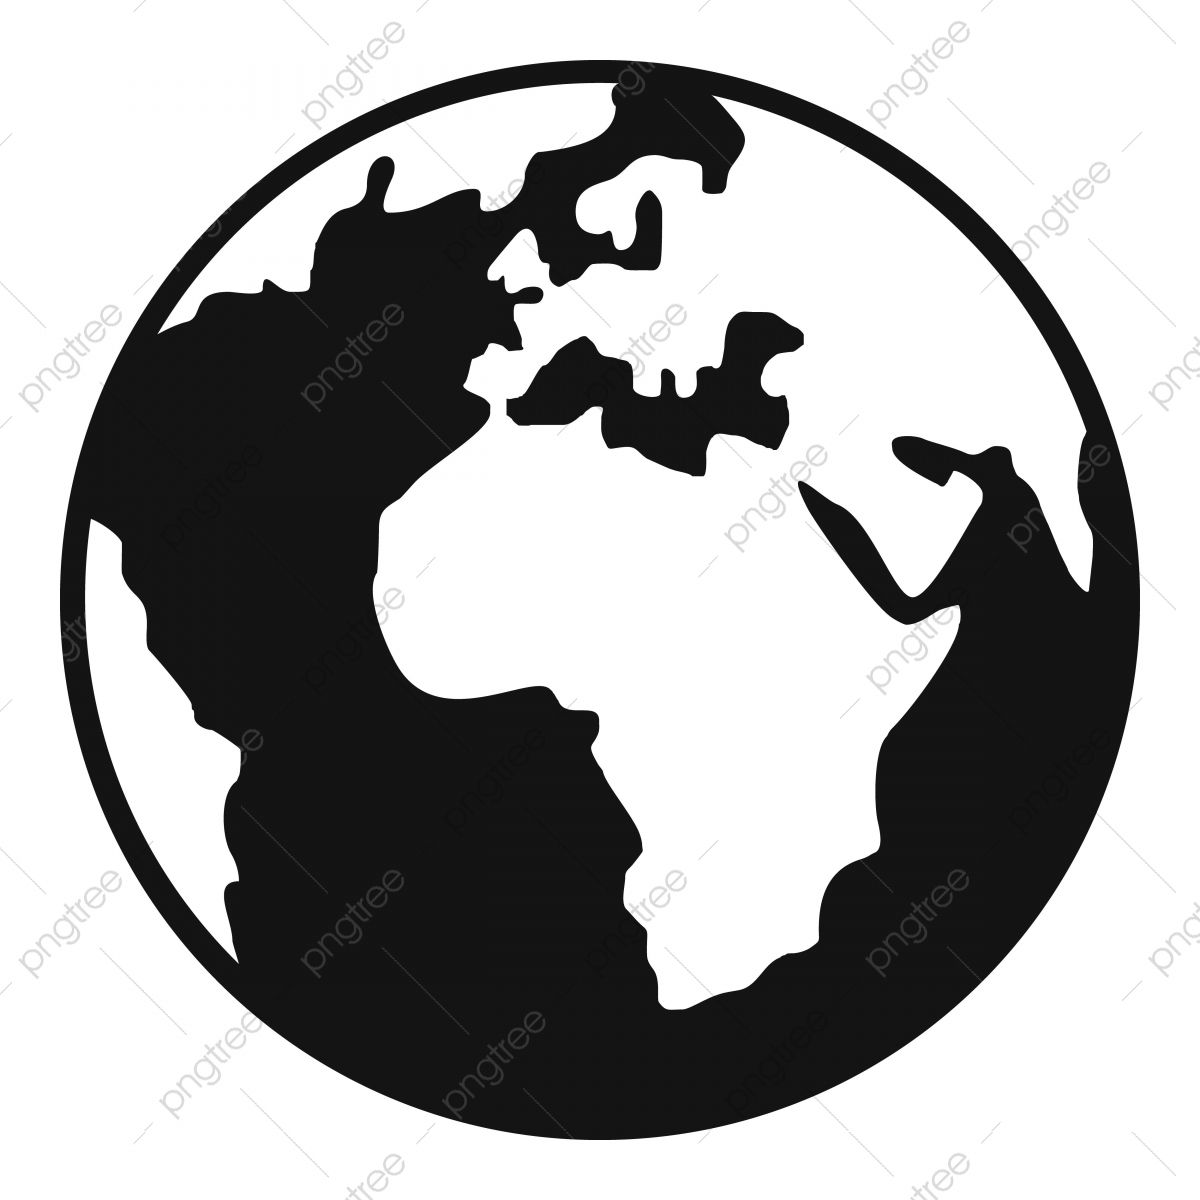 Earth Globe Icon Simple Style Globe Icons Earth Icons Style Icons Png And Vector With Transparent Background For Free Download Globe Icon Earth Drawings Earth Globe